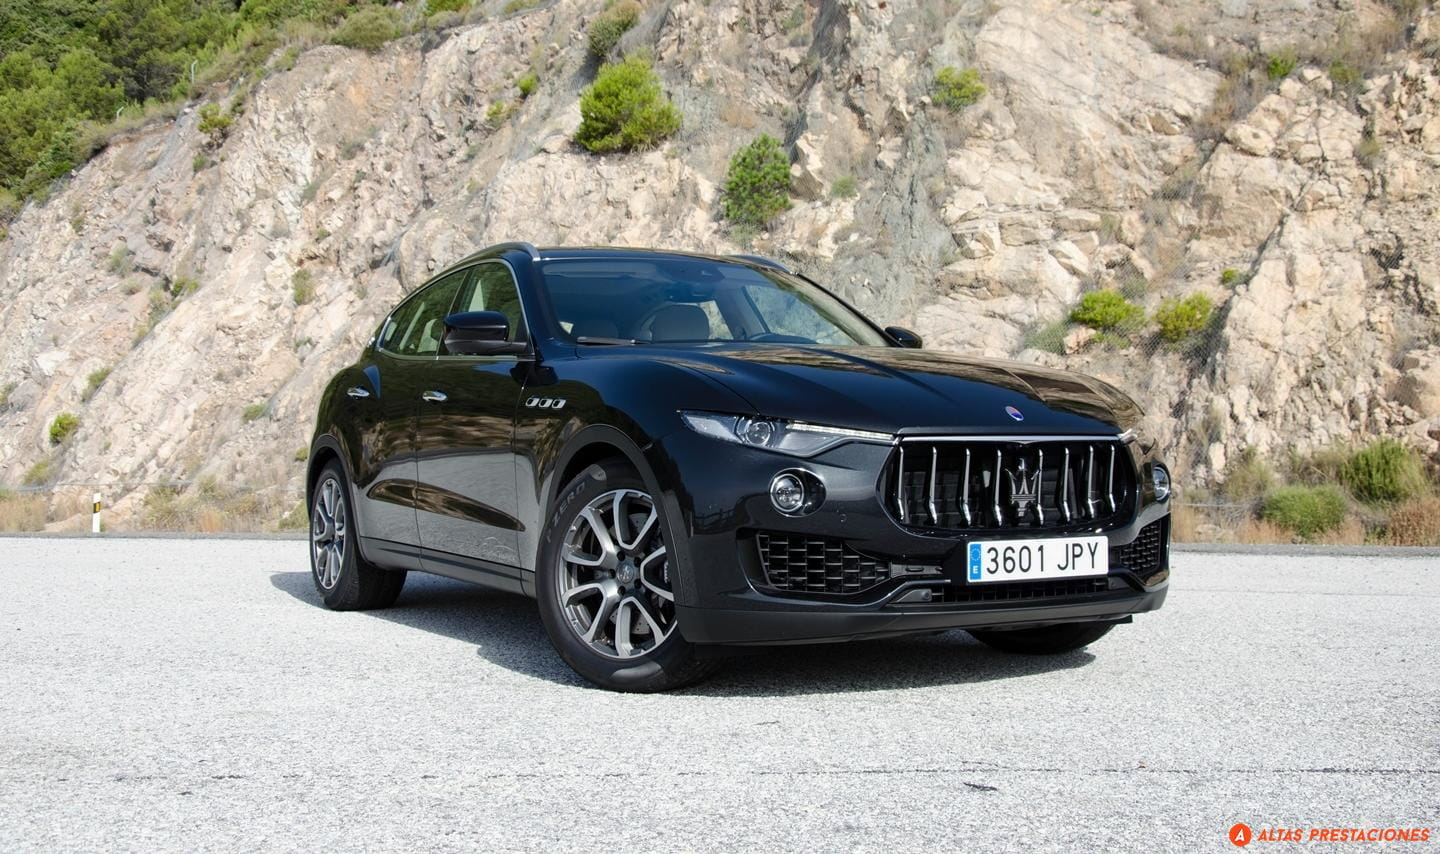 Test Maserati Levante S 430 CV: from the circuit to the end of the world